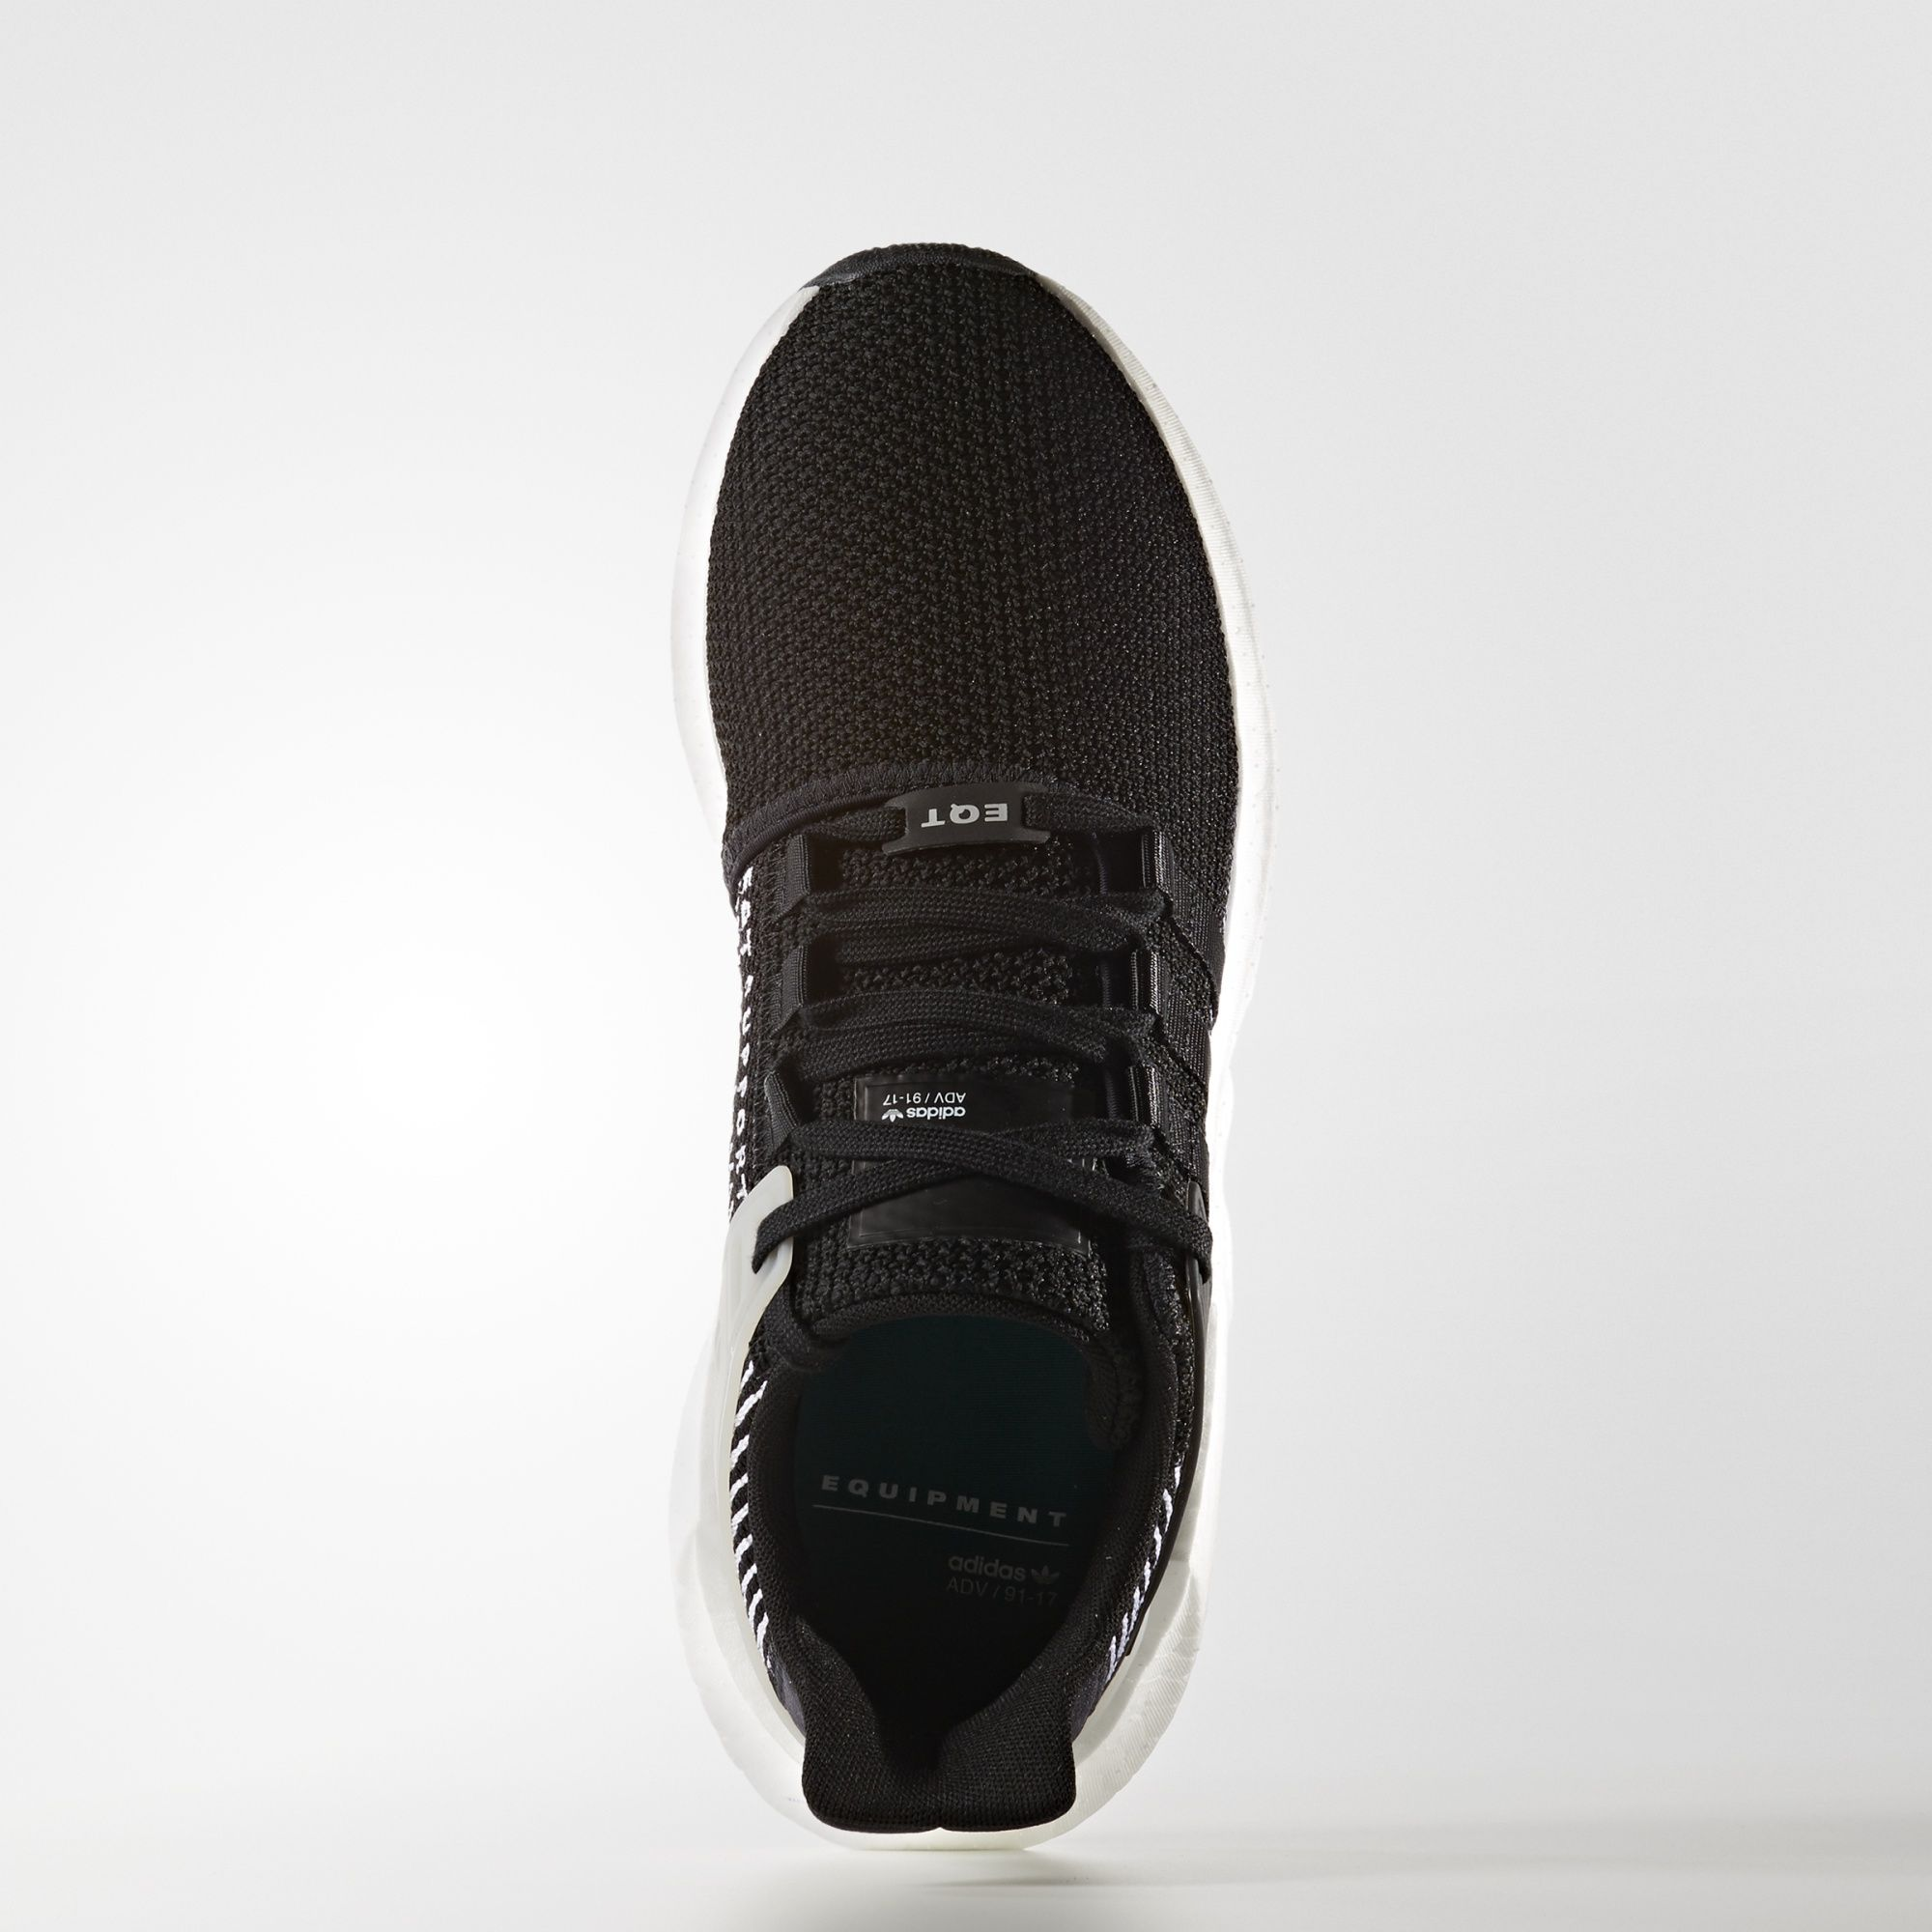 BY9509 adidas EQT Support 93 17 Black White 1